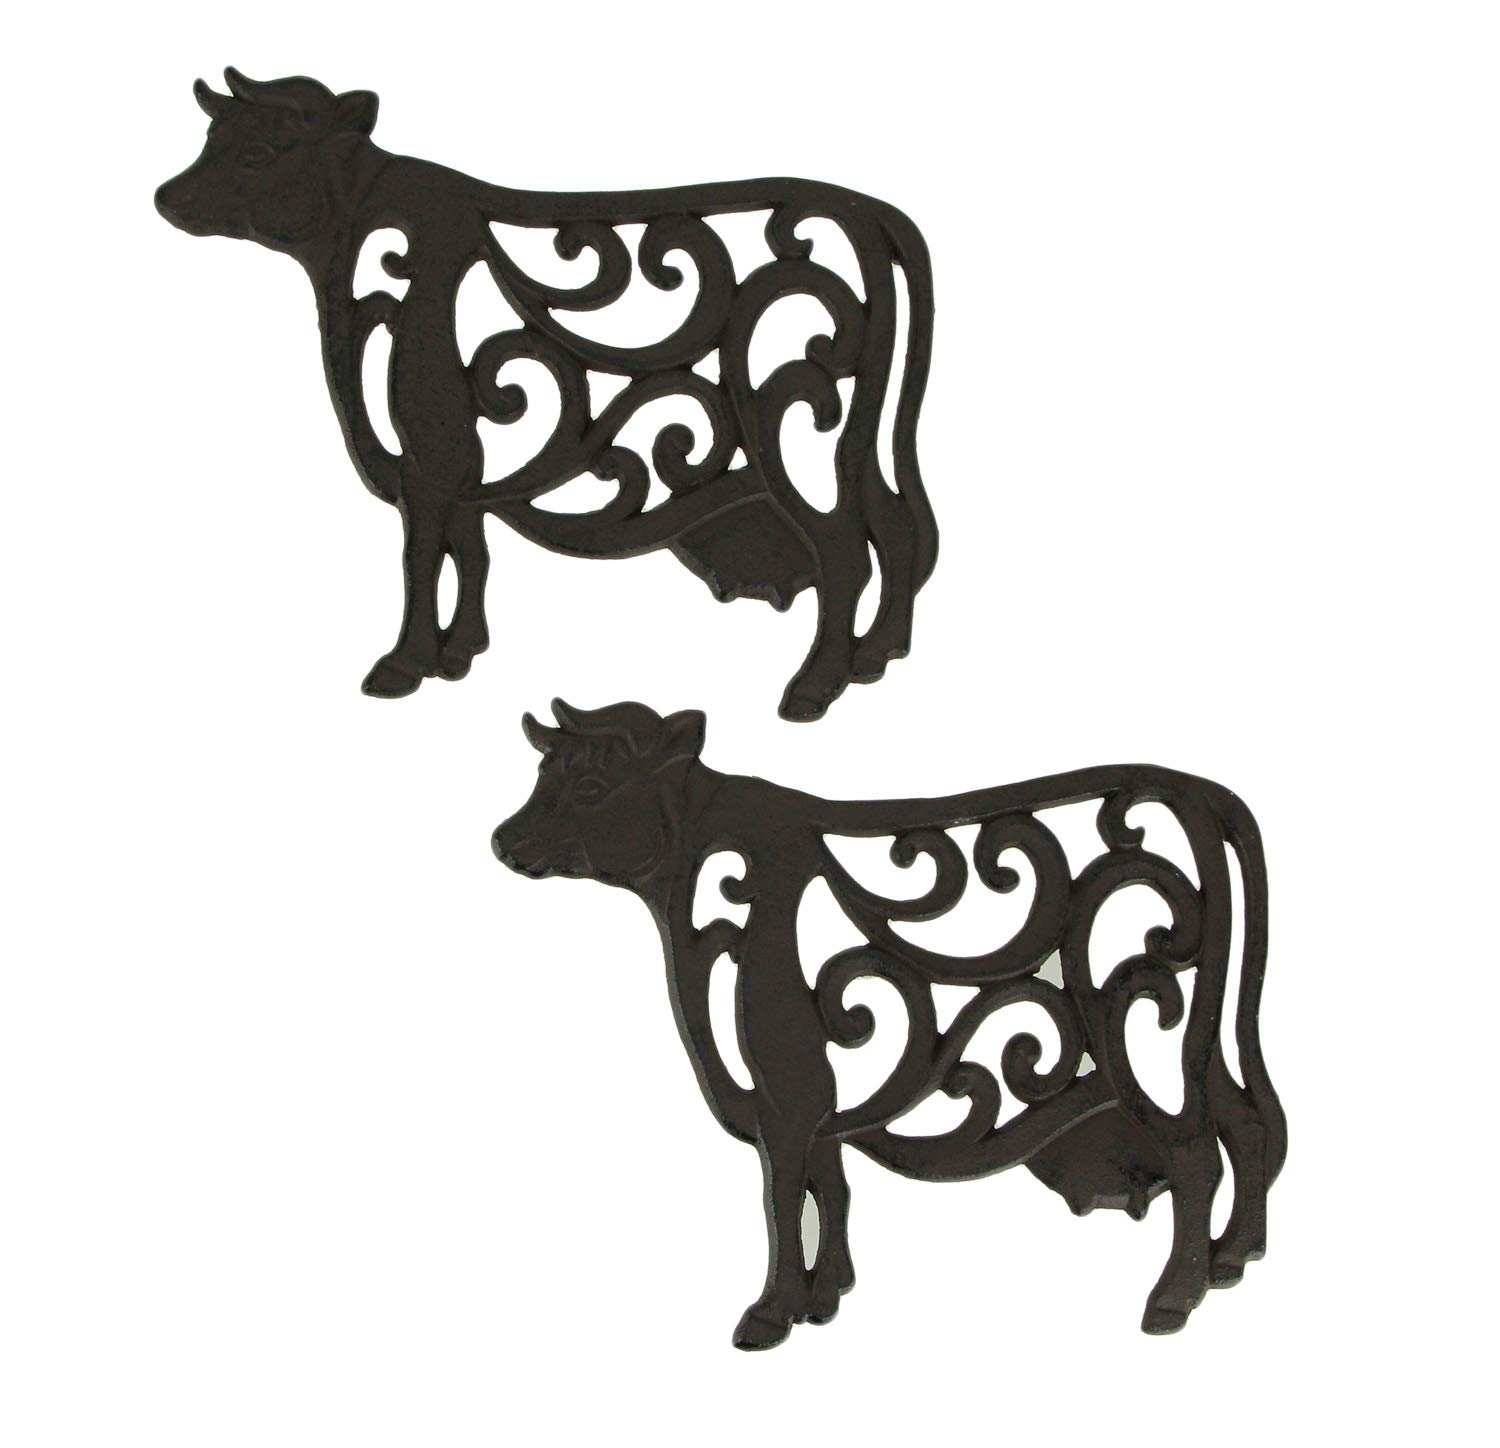 Brown Cast Iron Cow Floral Scroll Trivets Set of 2 by DeLeon Collections